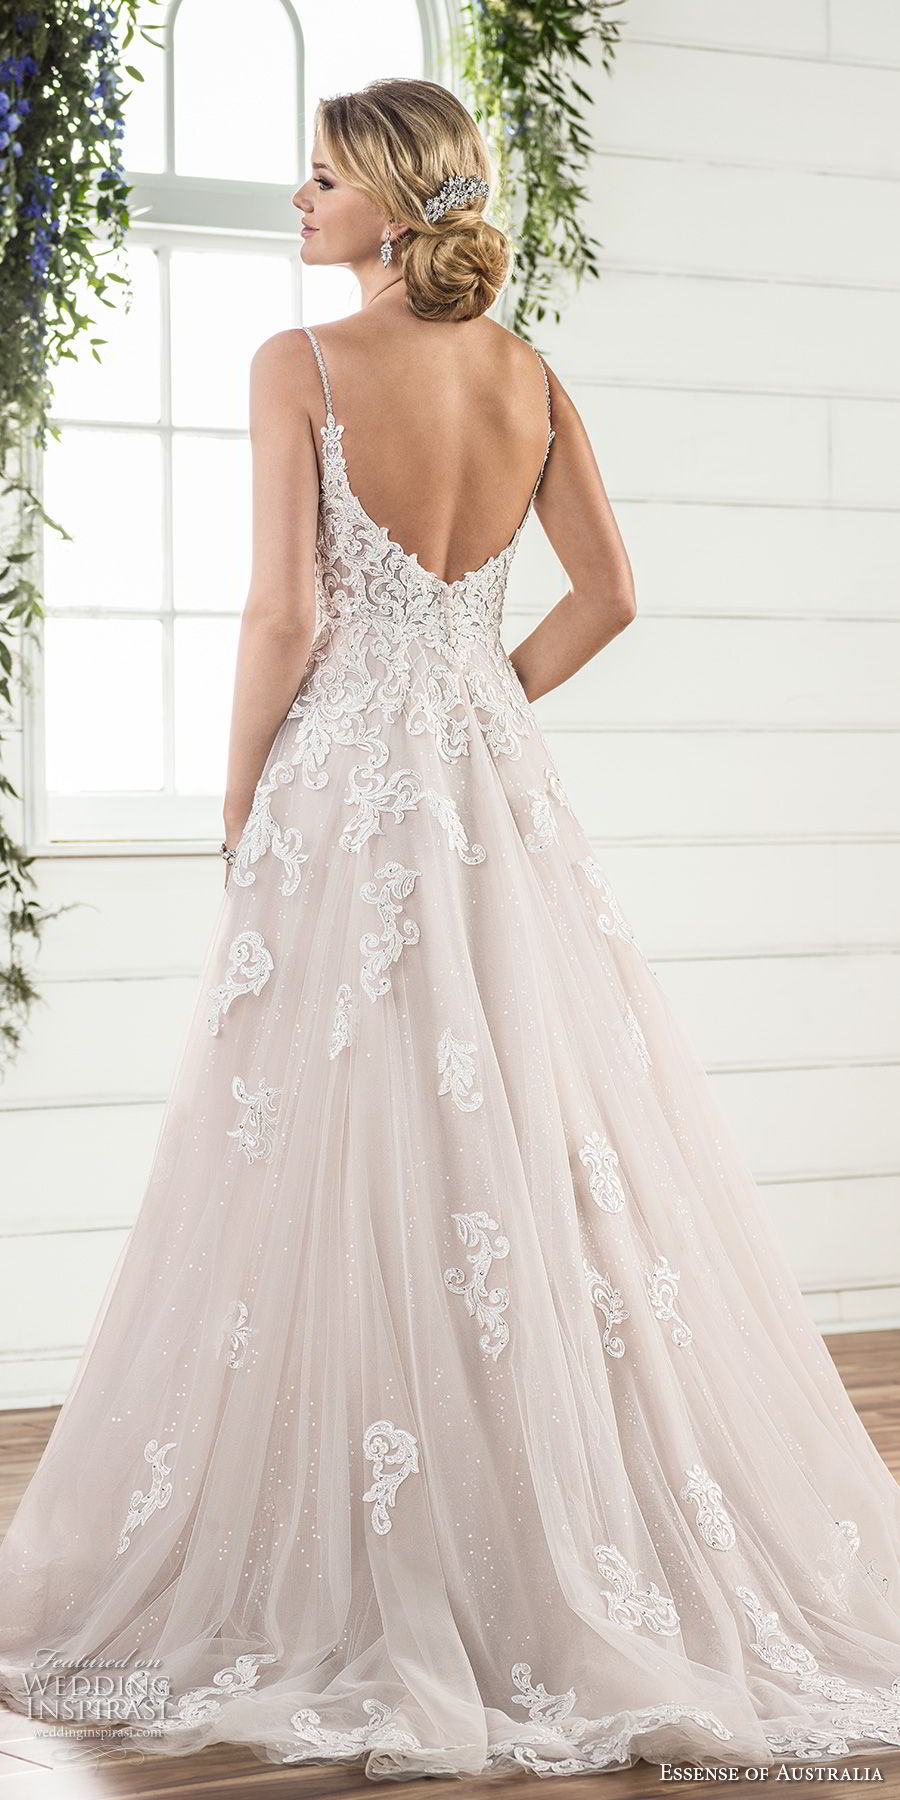 essense australia fall 2017 bridal spaghetti strap sweetheart neckline heavily embellished bodice romantic blush color a line wedding dress open scoop back sweep train (63) bv